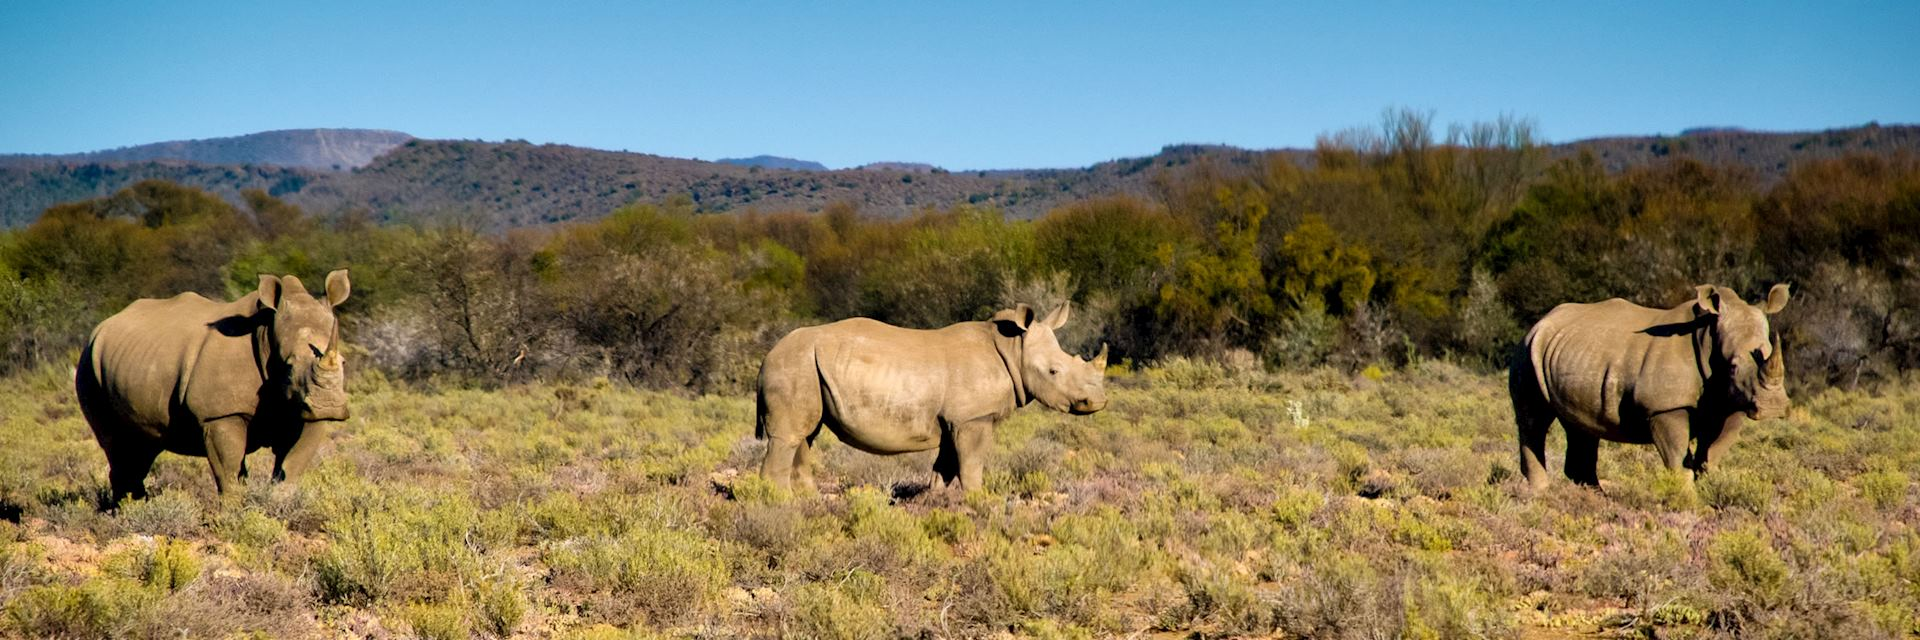 Rhino, Sanbona Game Reserve, Little Karoo